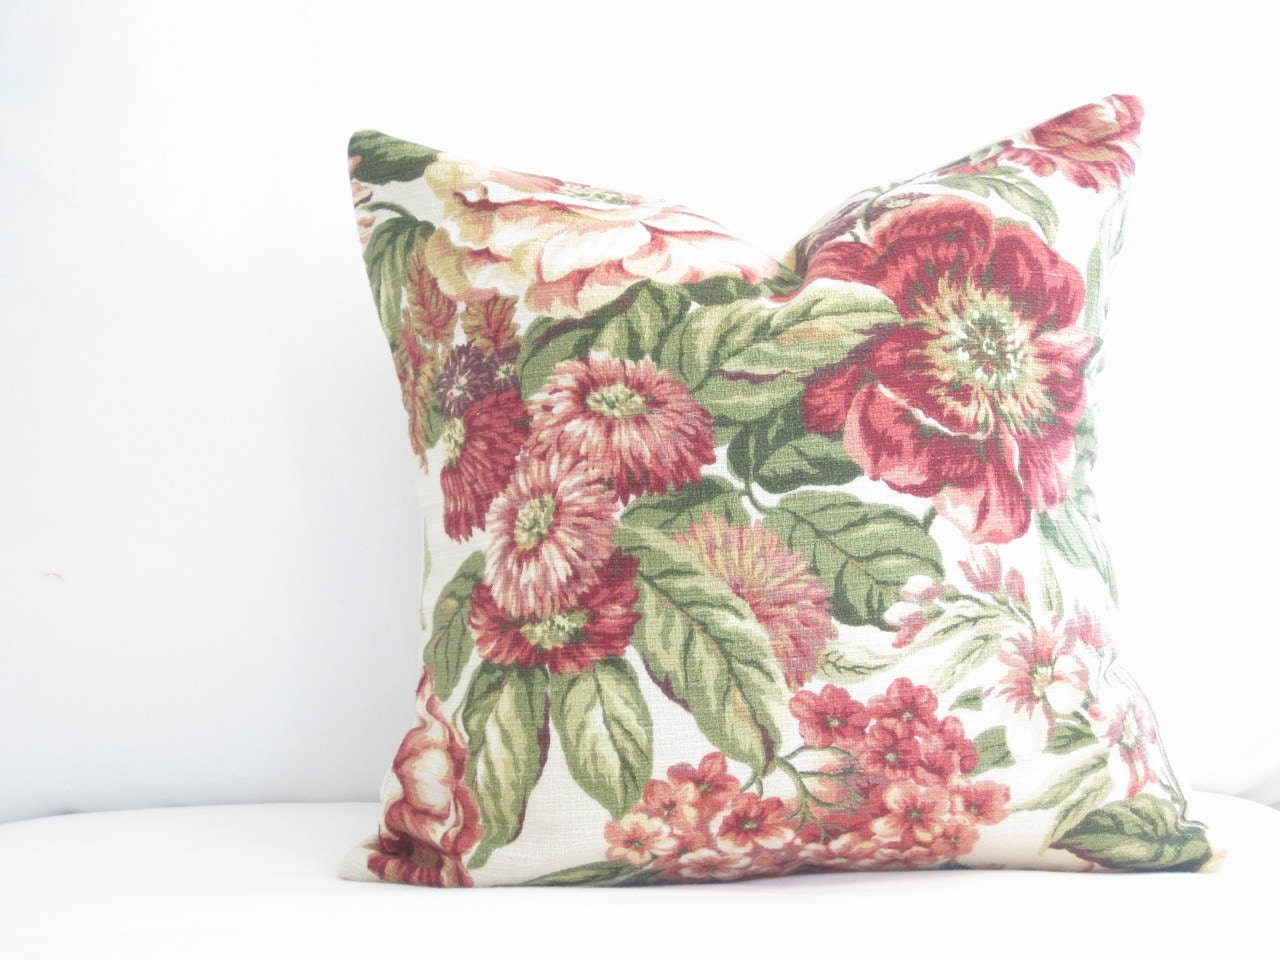 Decorative Pillows Flowers : 16x16 inch red floral decorative pillow floral by FineFreshDesign